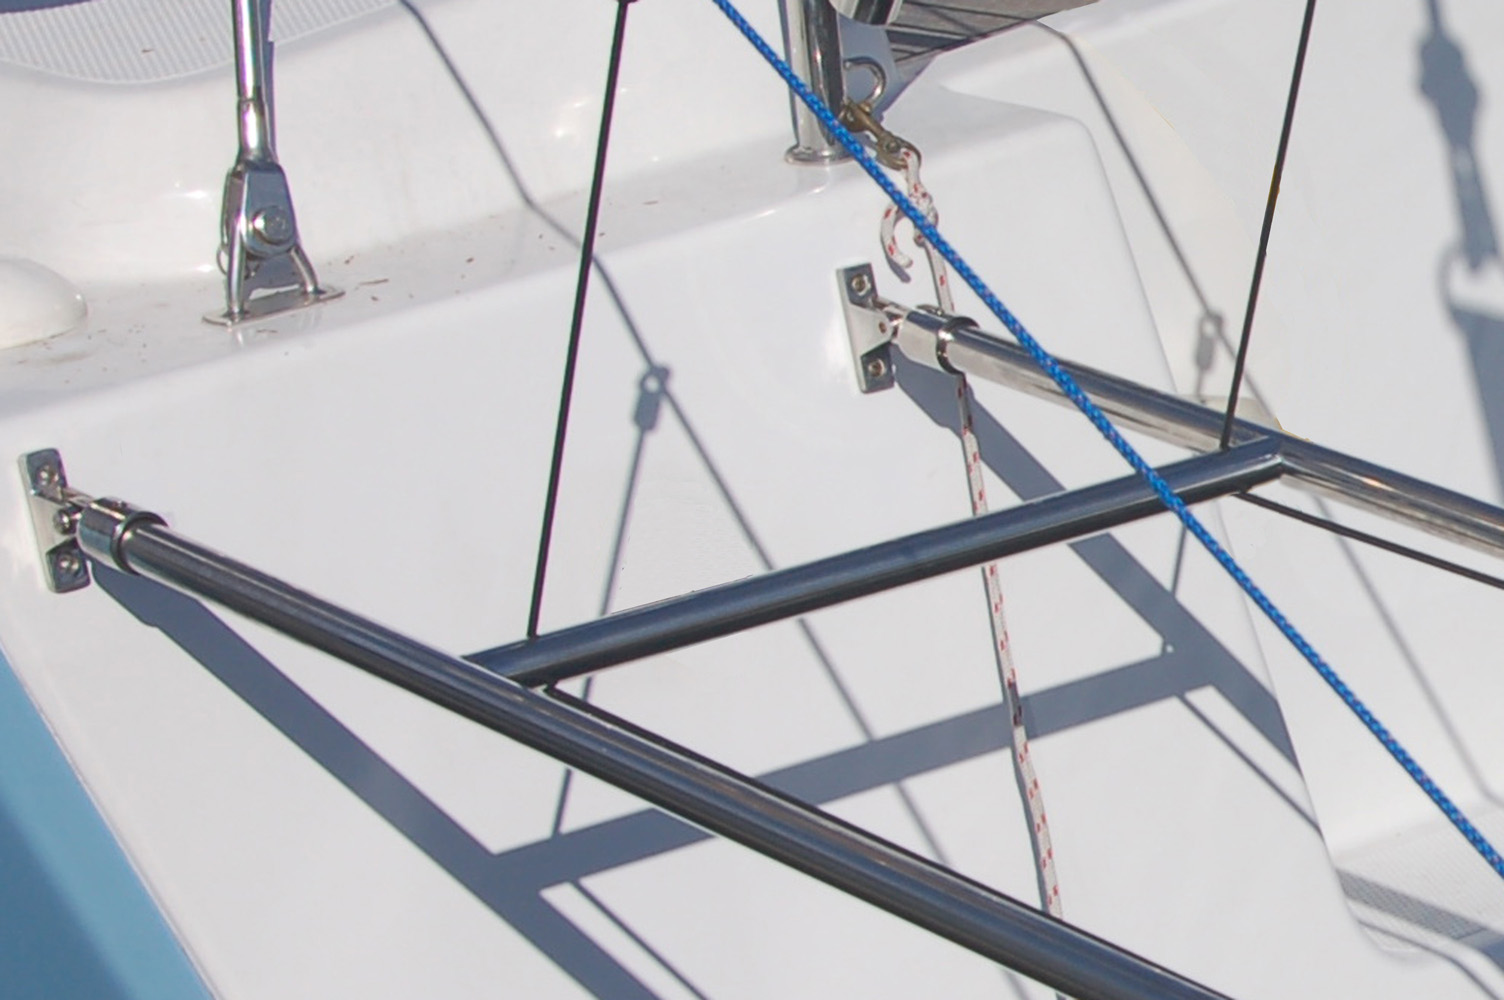 Simple installation with two deck hinges